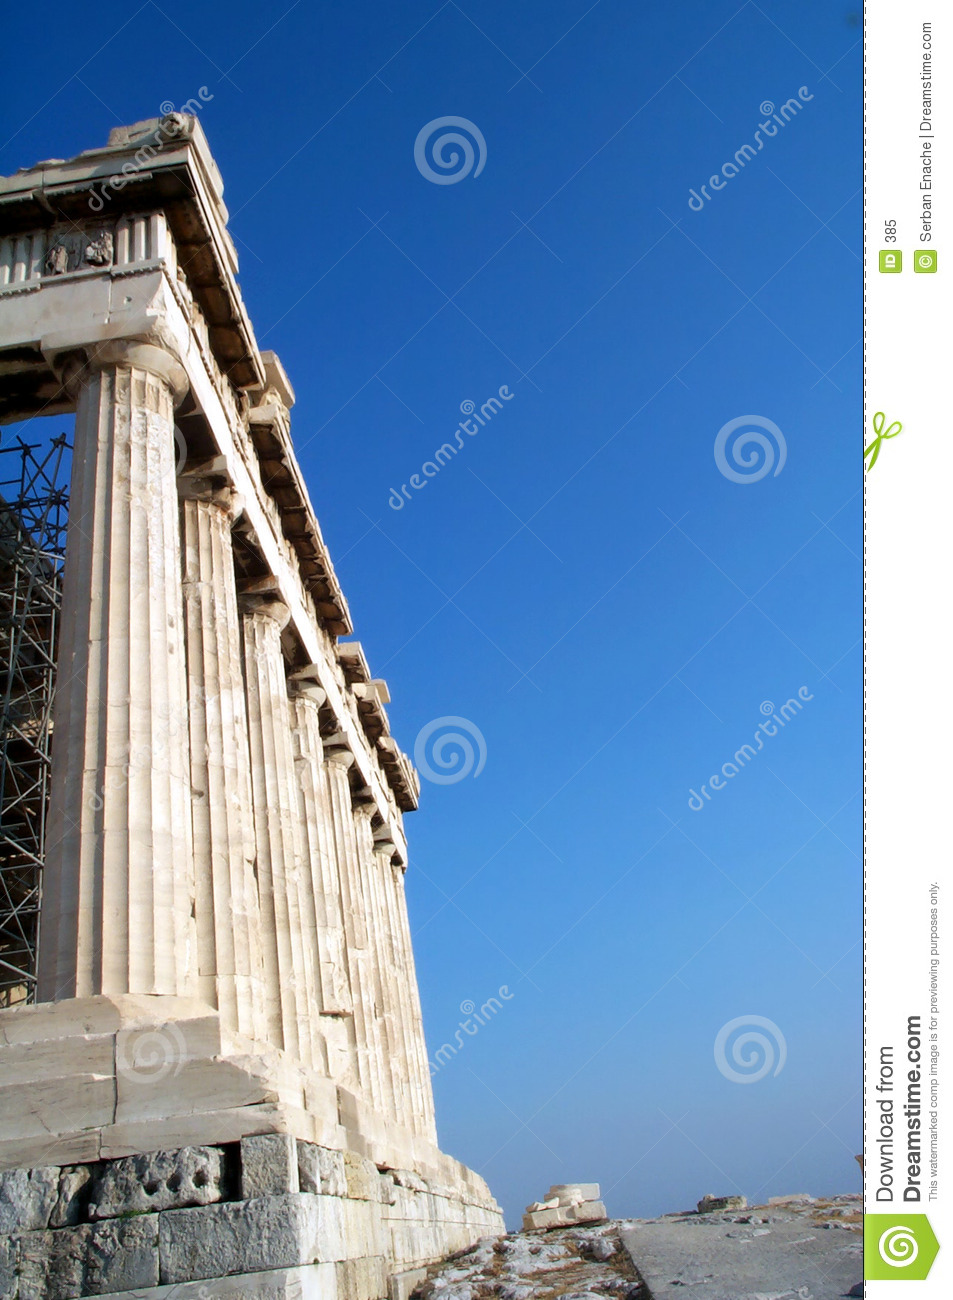 Kolommen in Parthenon